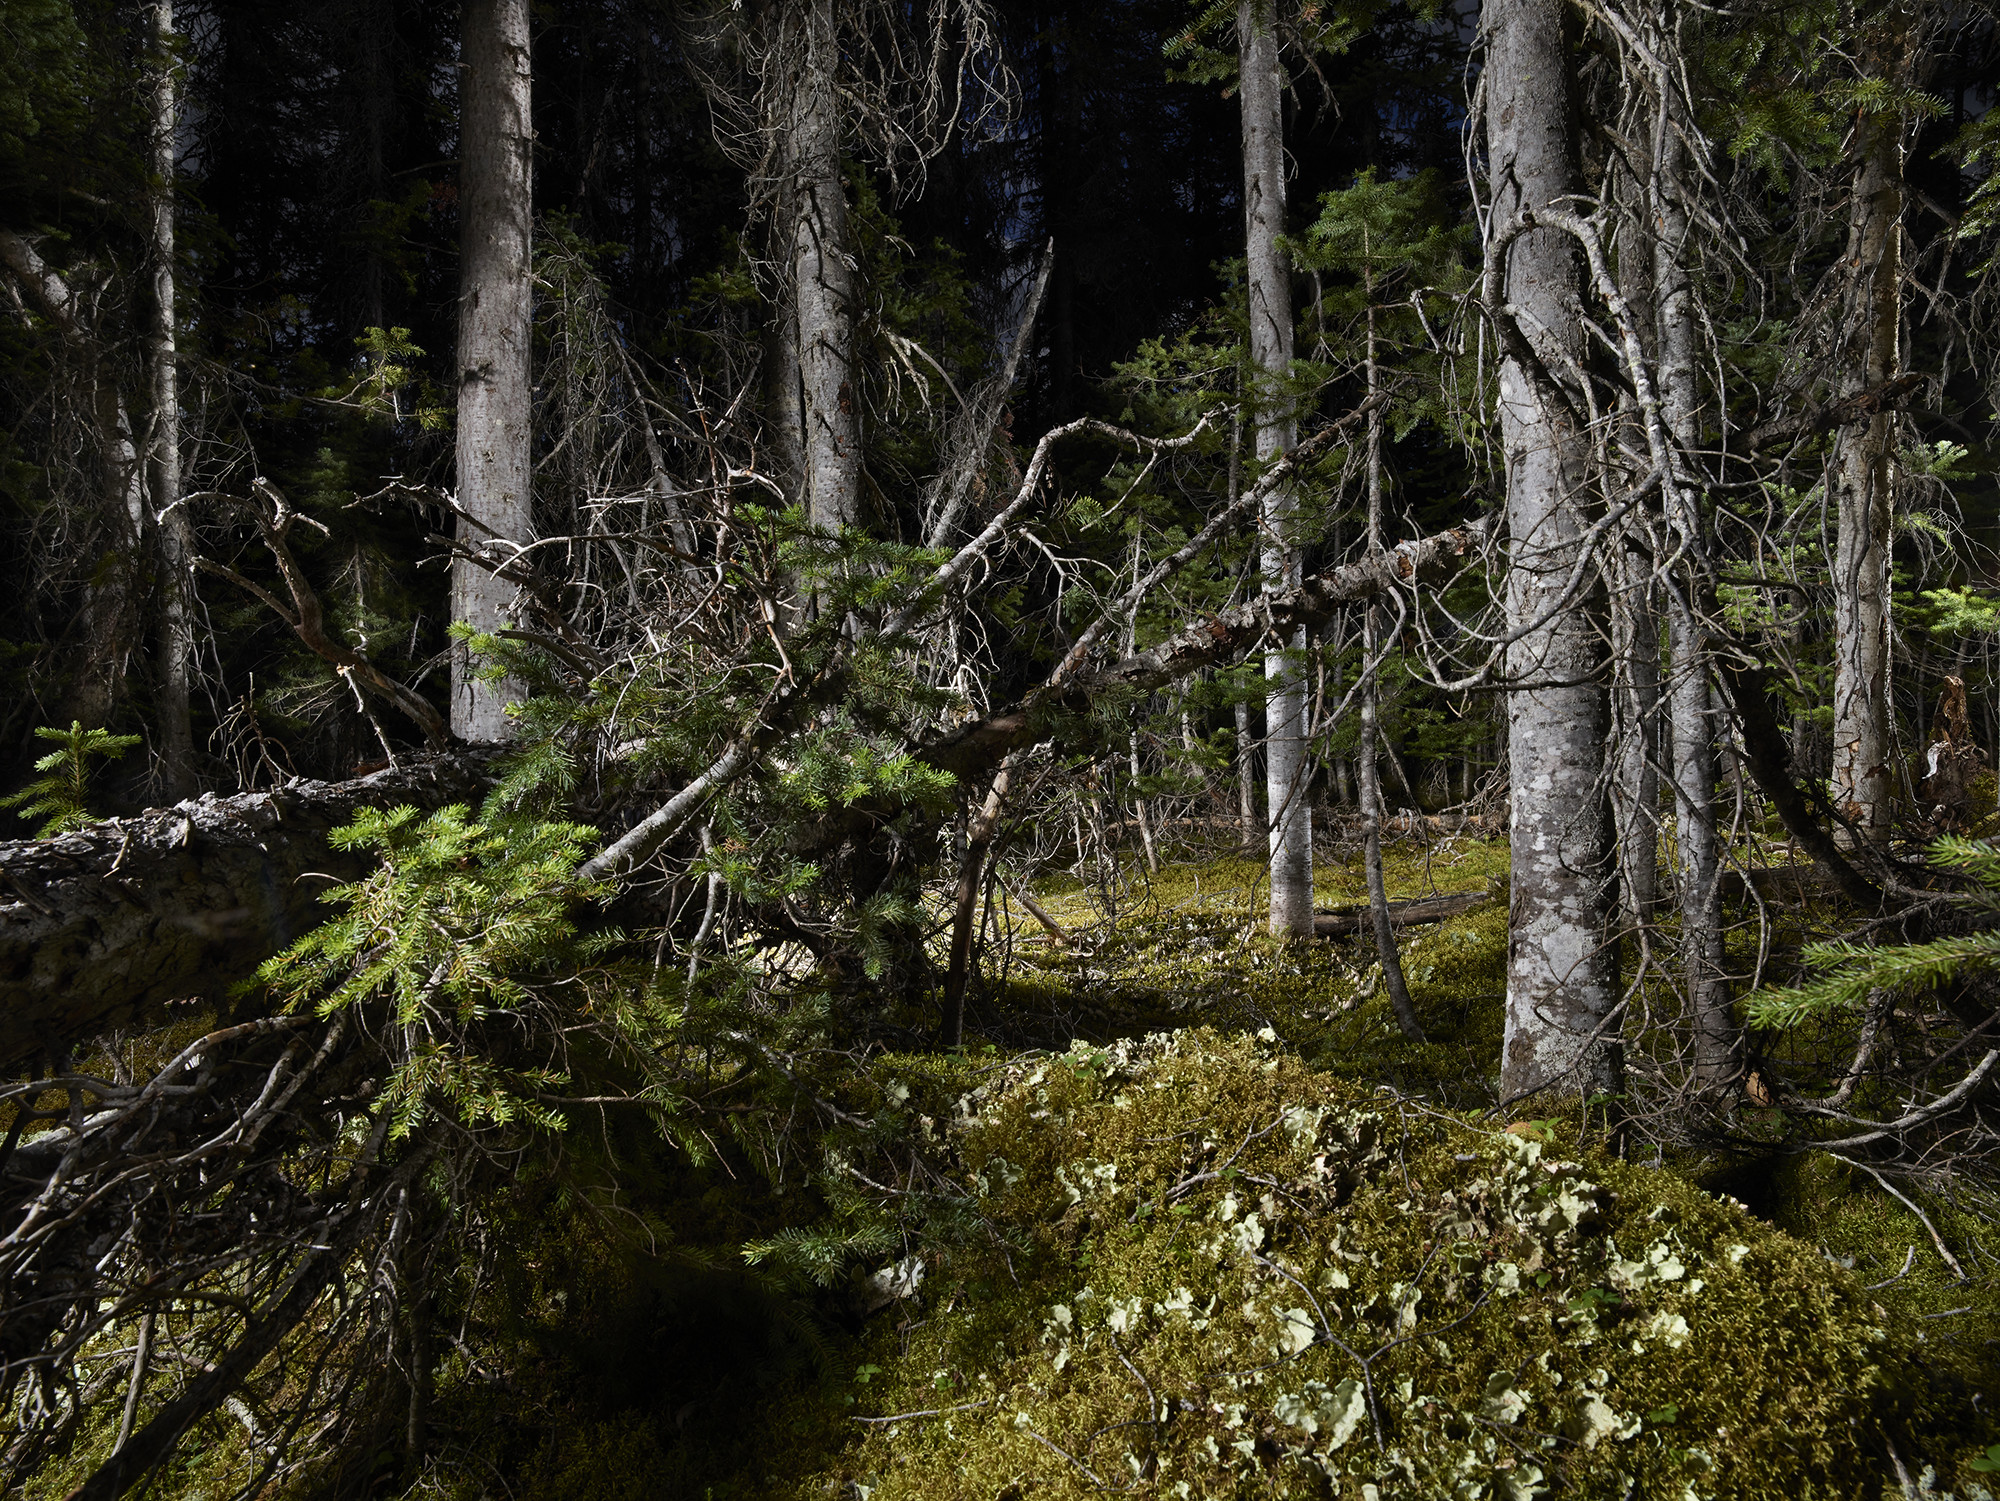 """<span class=""""link fancybox-details-link""""><a href=""""/artists/45-rita-leistner/works/35129-rita-leistner-the-tree-plantersenchanted-forest-06-2018/"""">View Detail Page</a></span><div class=""""artist""""><strong>Rita Leistner</strong></div> b. 1964 <div class=""""title""""><em>The Tree Planters–Enchanted Forest #06</em>, 2018</div> <div class=""""signed_and_dated"""">Signed, titled, dated, and editioned, au mount verso</div> <div class=""""medium"""">Pigment print on Hahnemühle Photo Silk Baryta Paper flush mounted to Aluminum Composite Panel</div> <div class=""""edition_details"""">Edition of 7 + 2 APs + 1 PP</div>"""